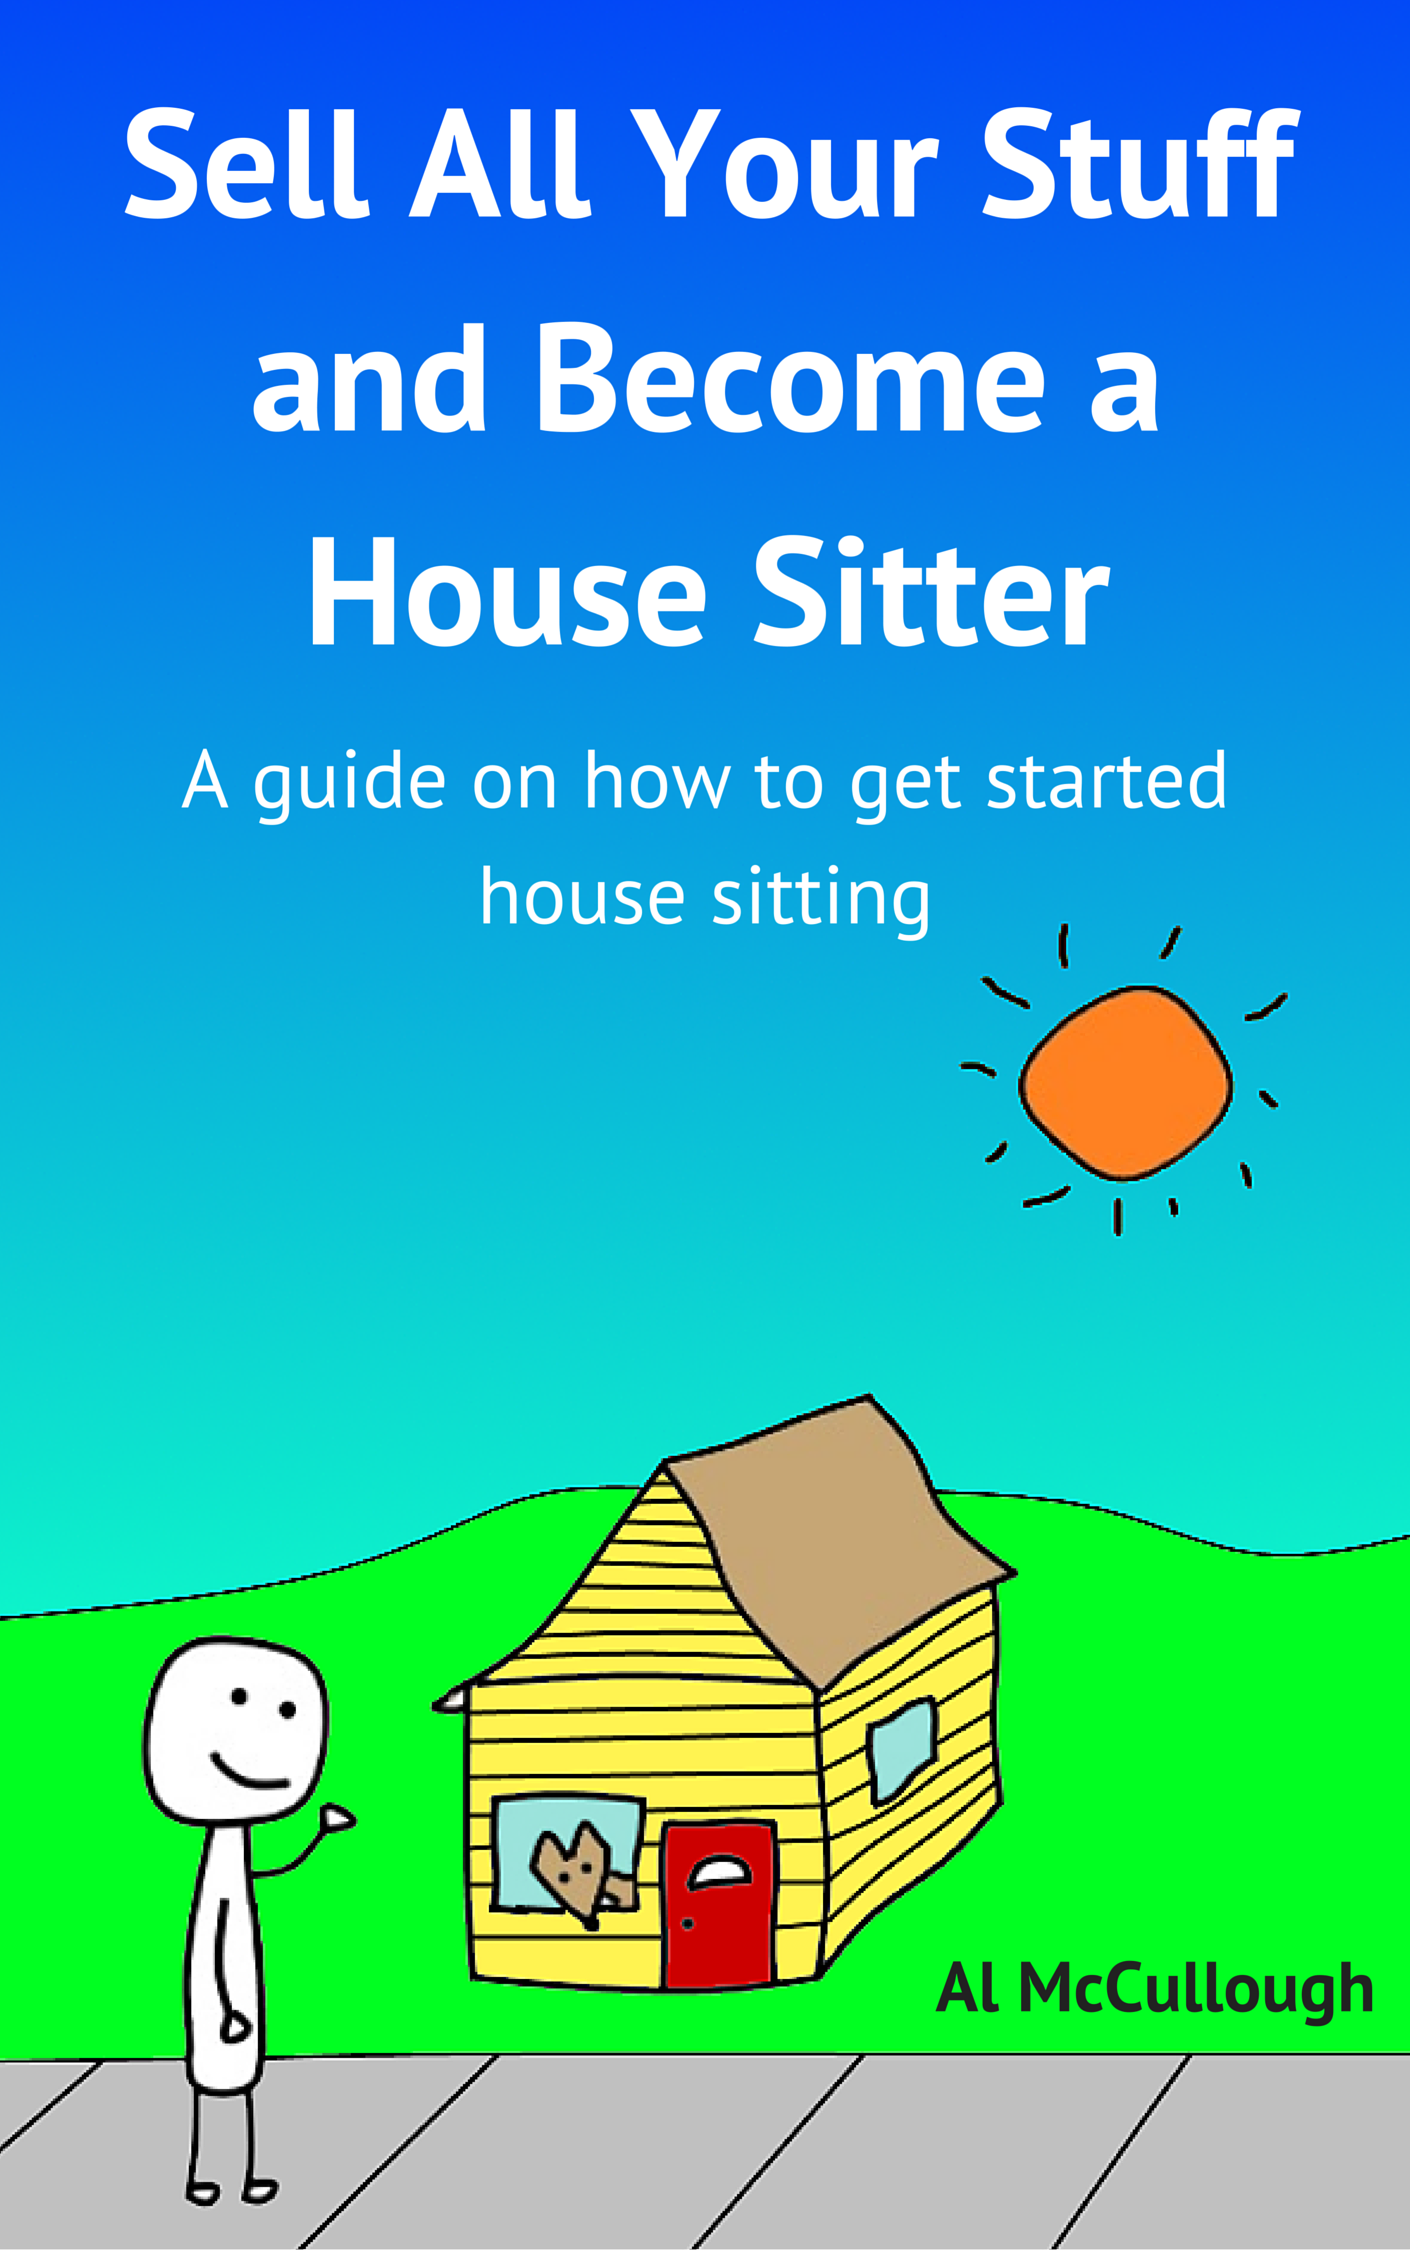 Sell All Your Stuff and Become a House Sitter